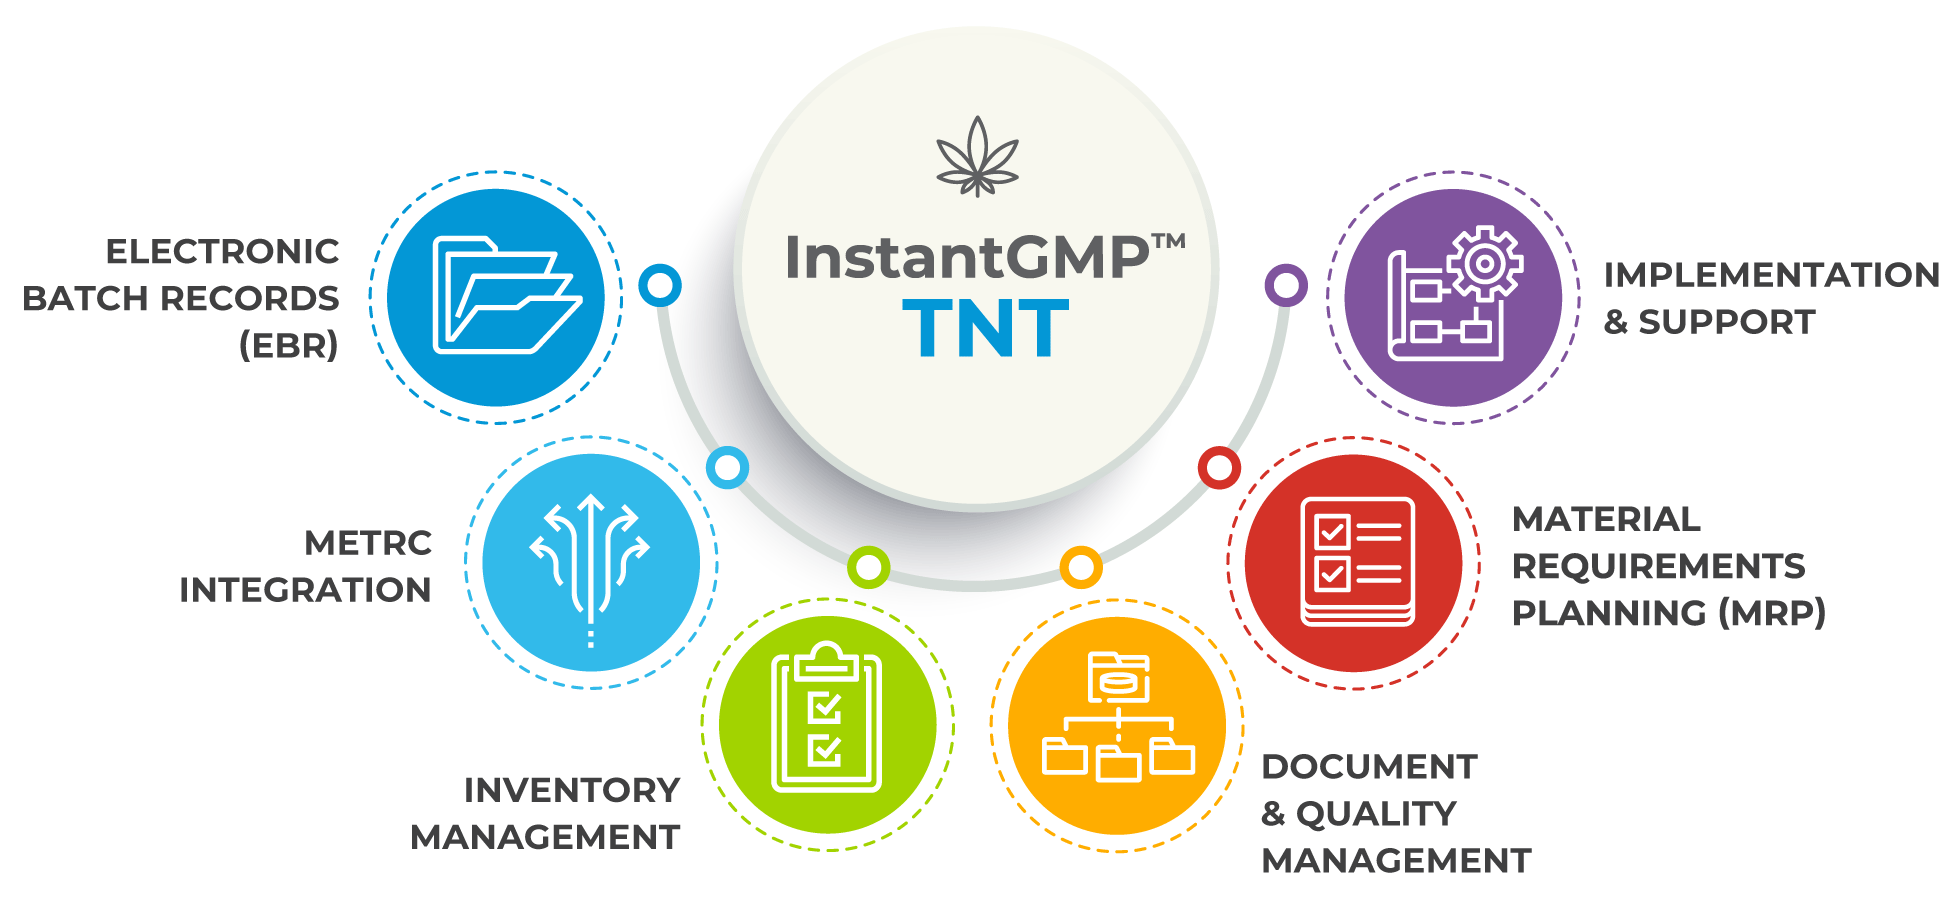 InstantGMP Cannabis Track and Trace product infographic